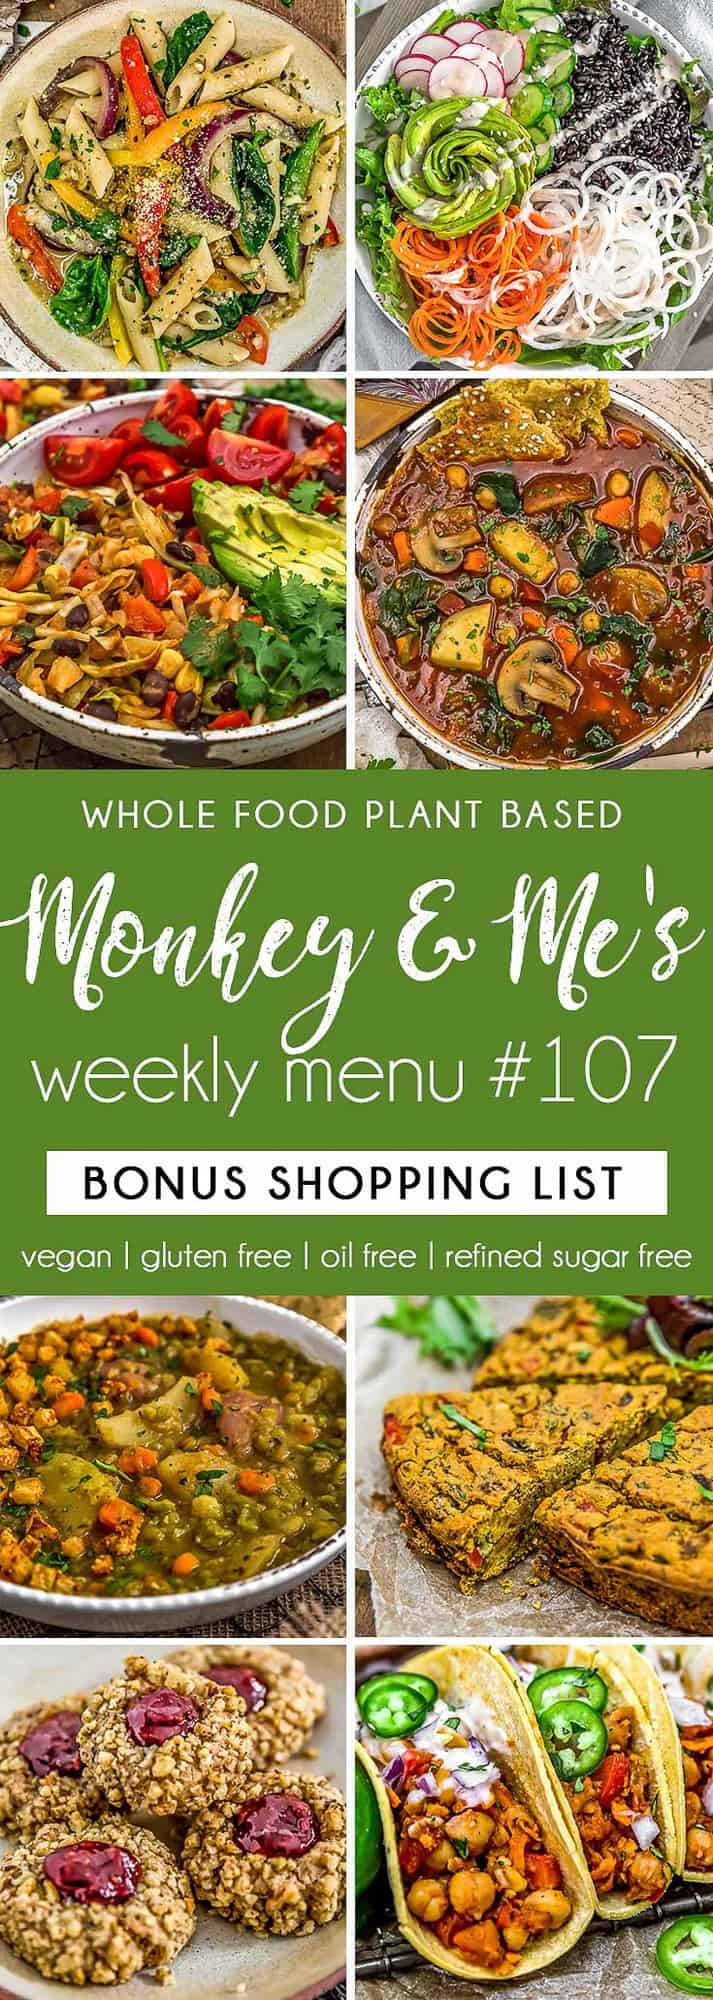 Monkey and Me's Menu 107 featuring 8 recipes